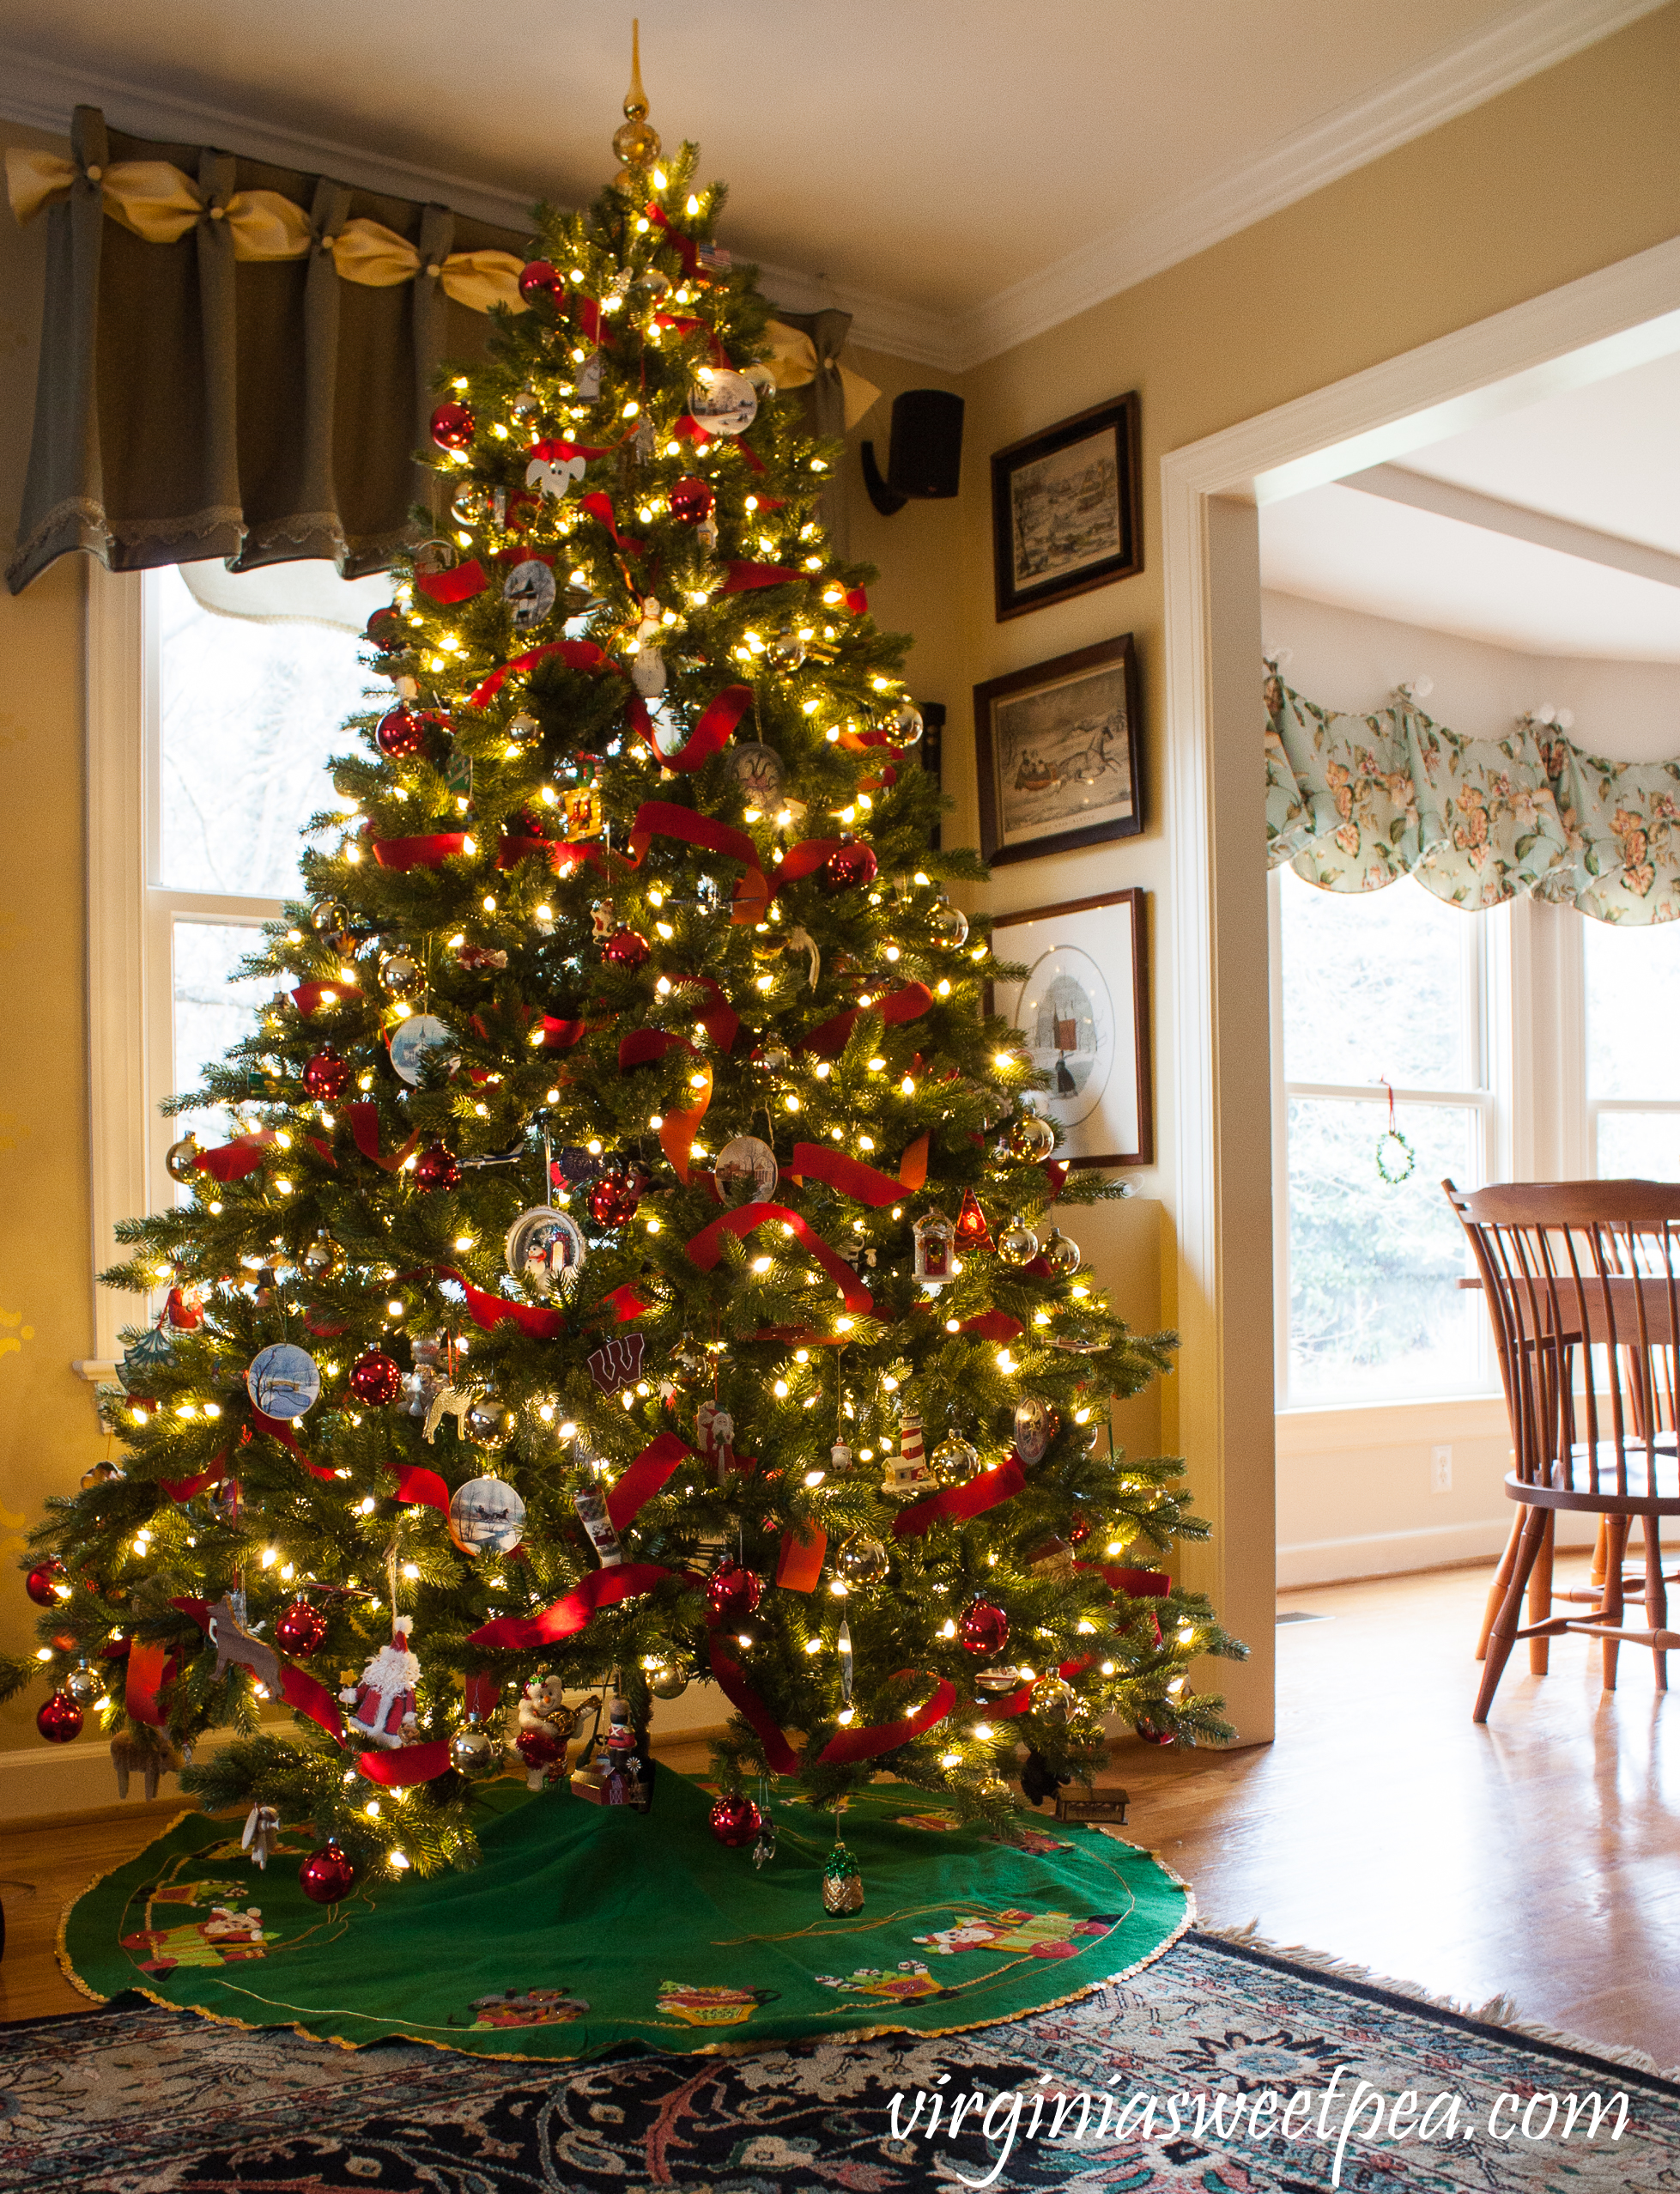 Christmas in the Family Room - Decorated Christmas tree #christmas #christmasdecor #christmasdecorations